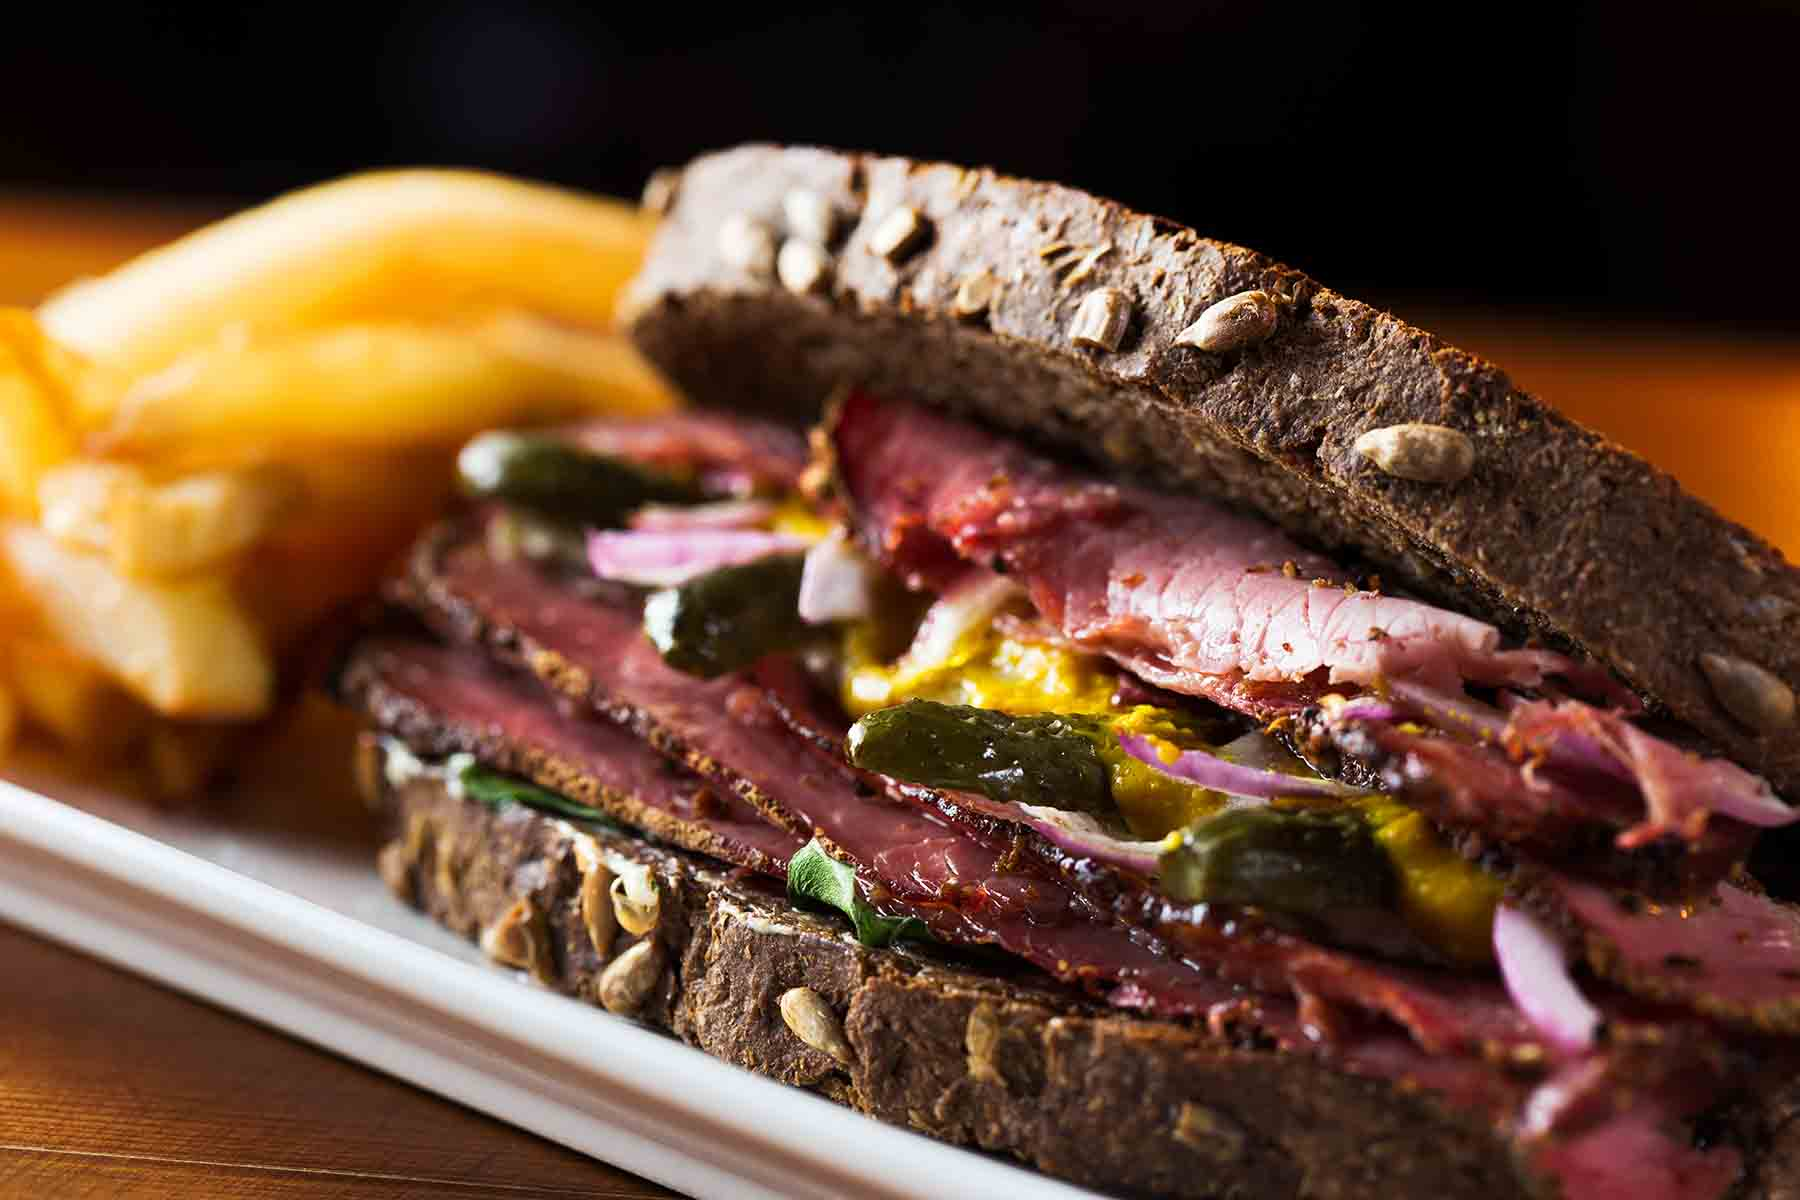 Reuben Sandwich with french fries